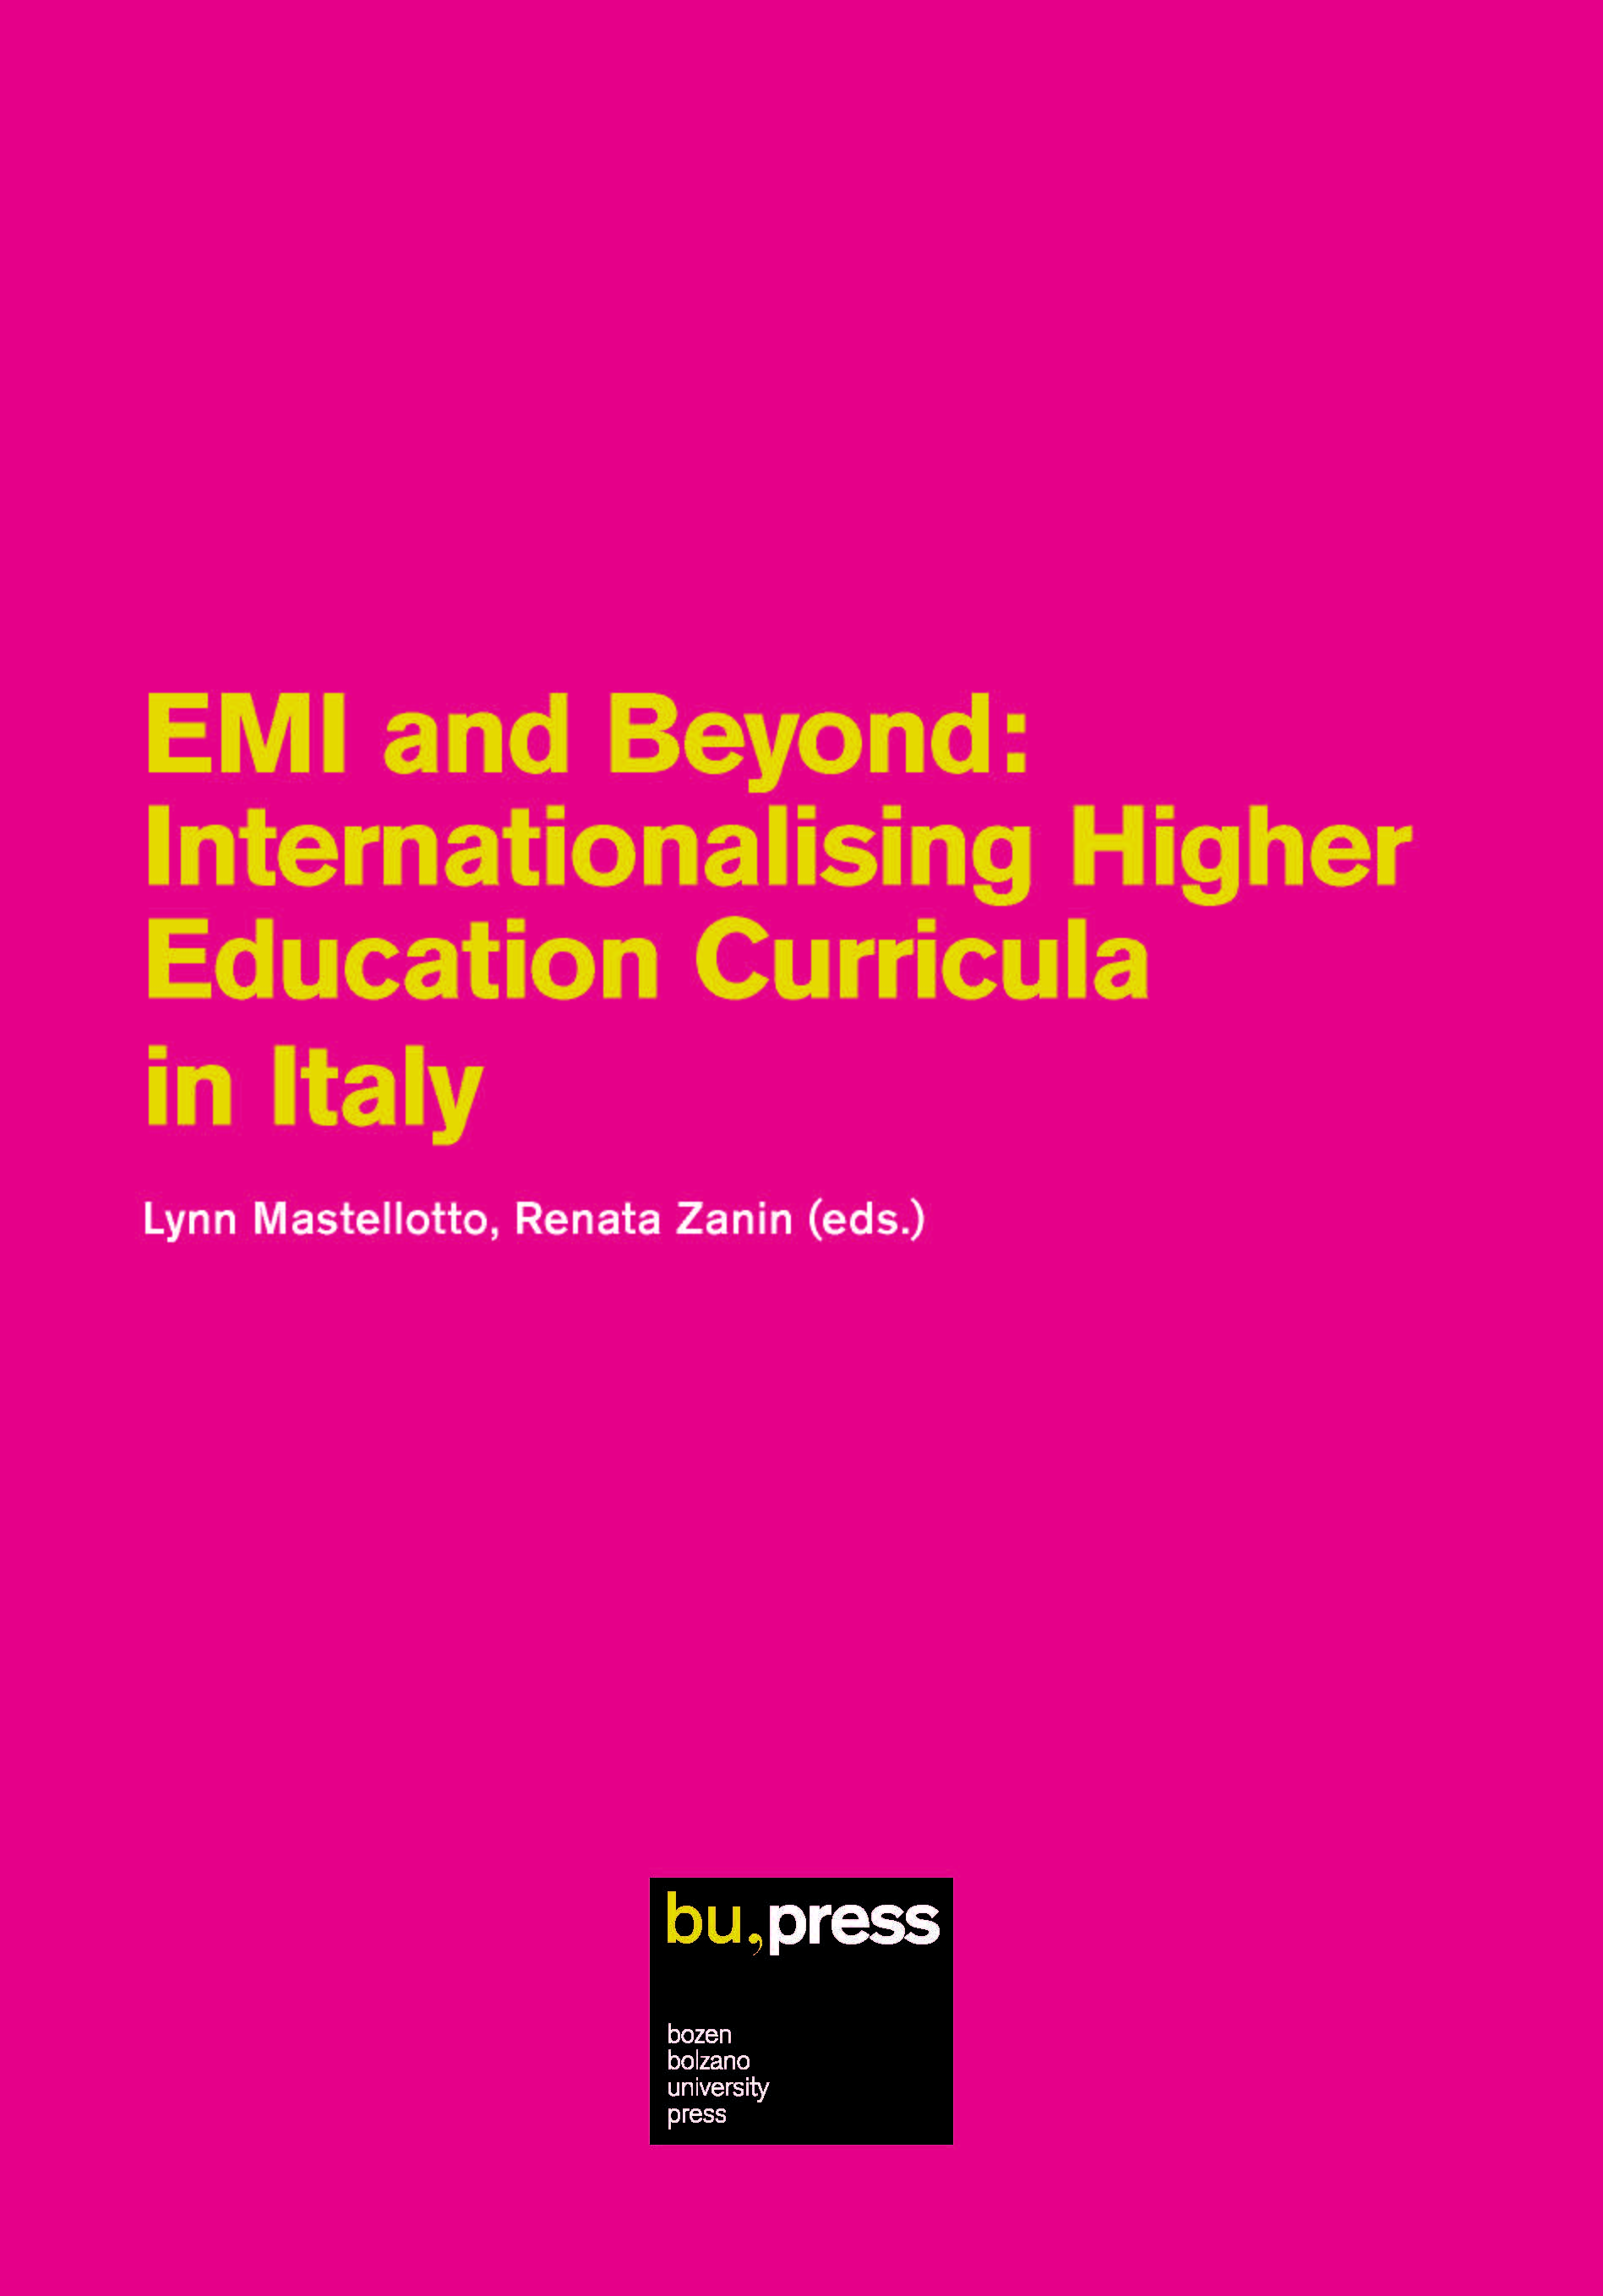 Cover of EMI and Beyond: Internationalising Higher Education Curricula in Italy